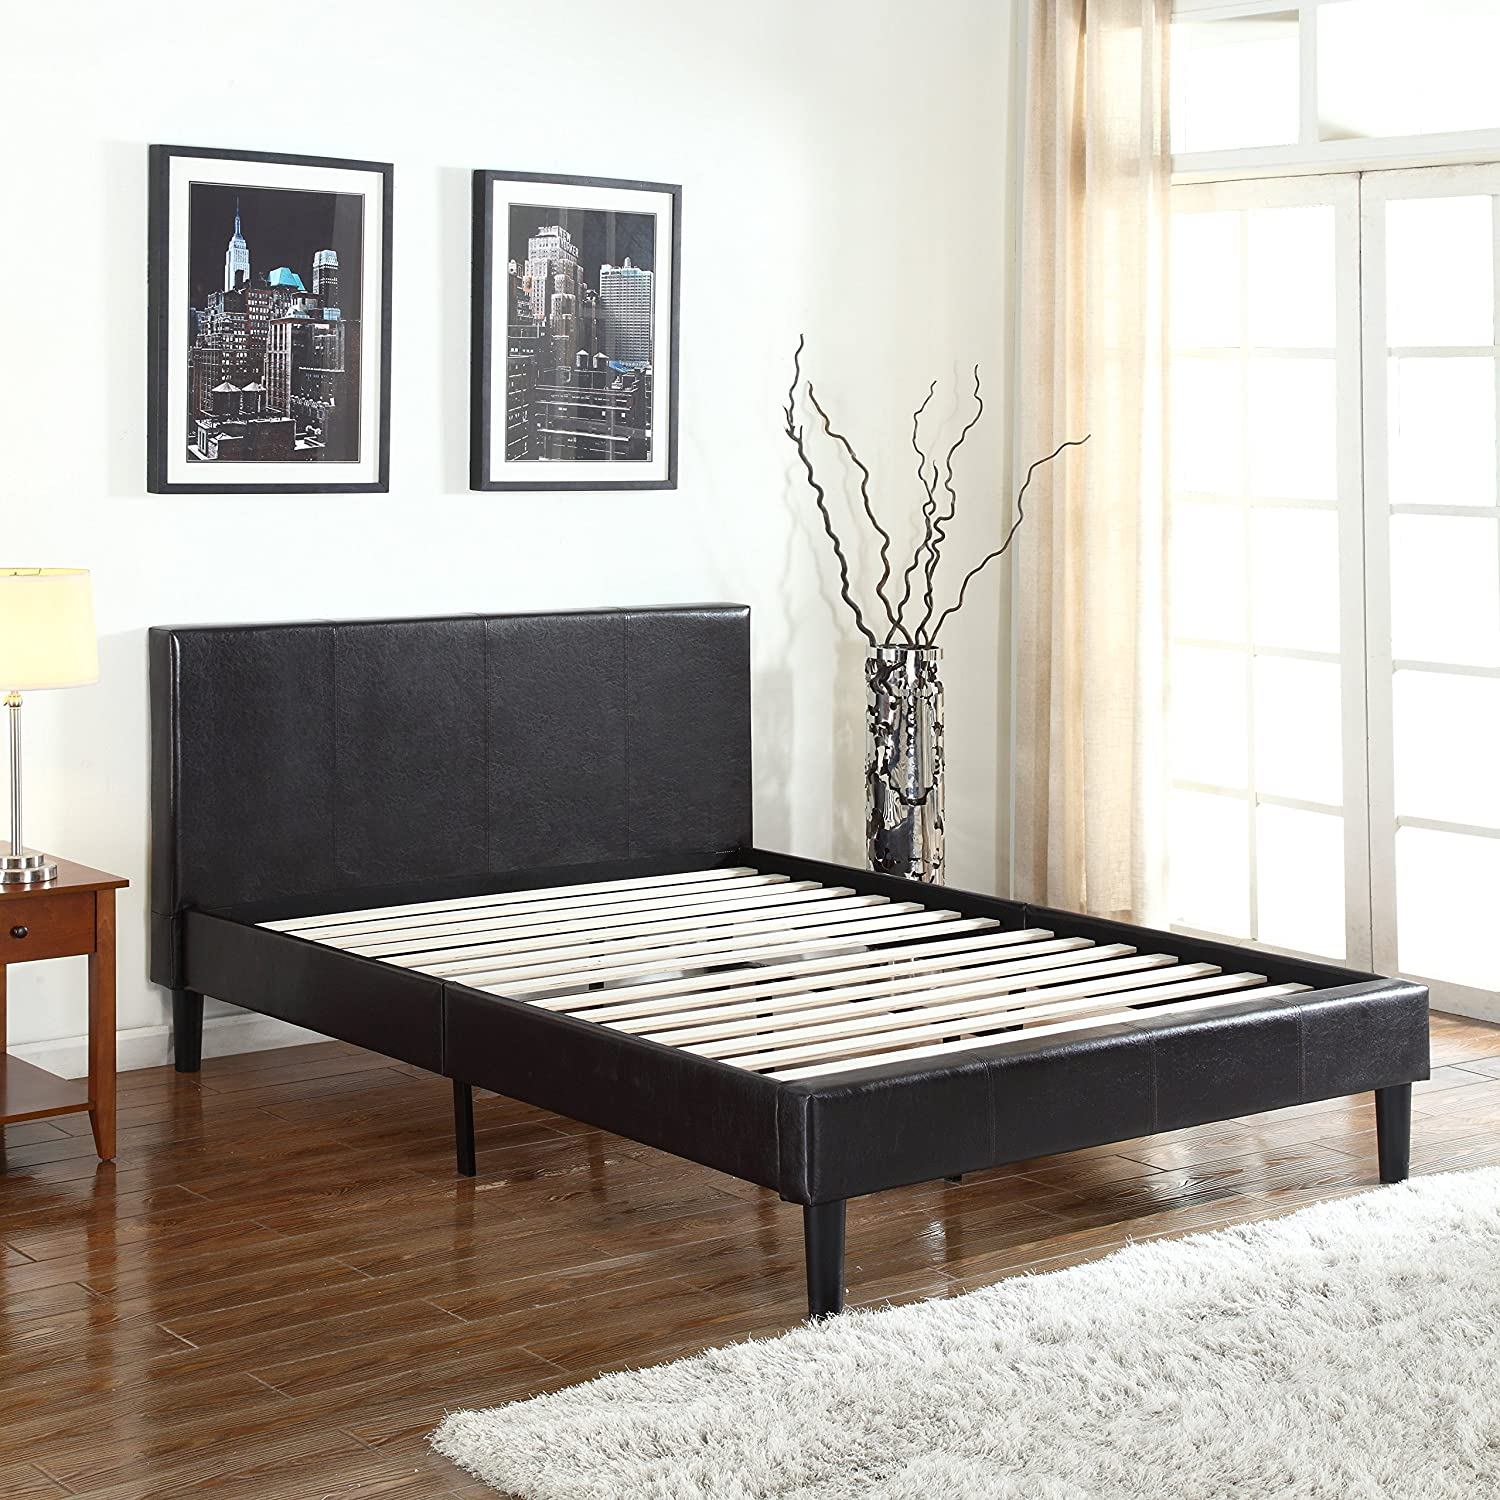 Amazon.com: Deluxe Espresso Brown Bonded Leather Platform Bed with ...